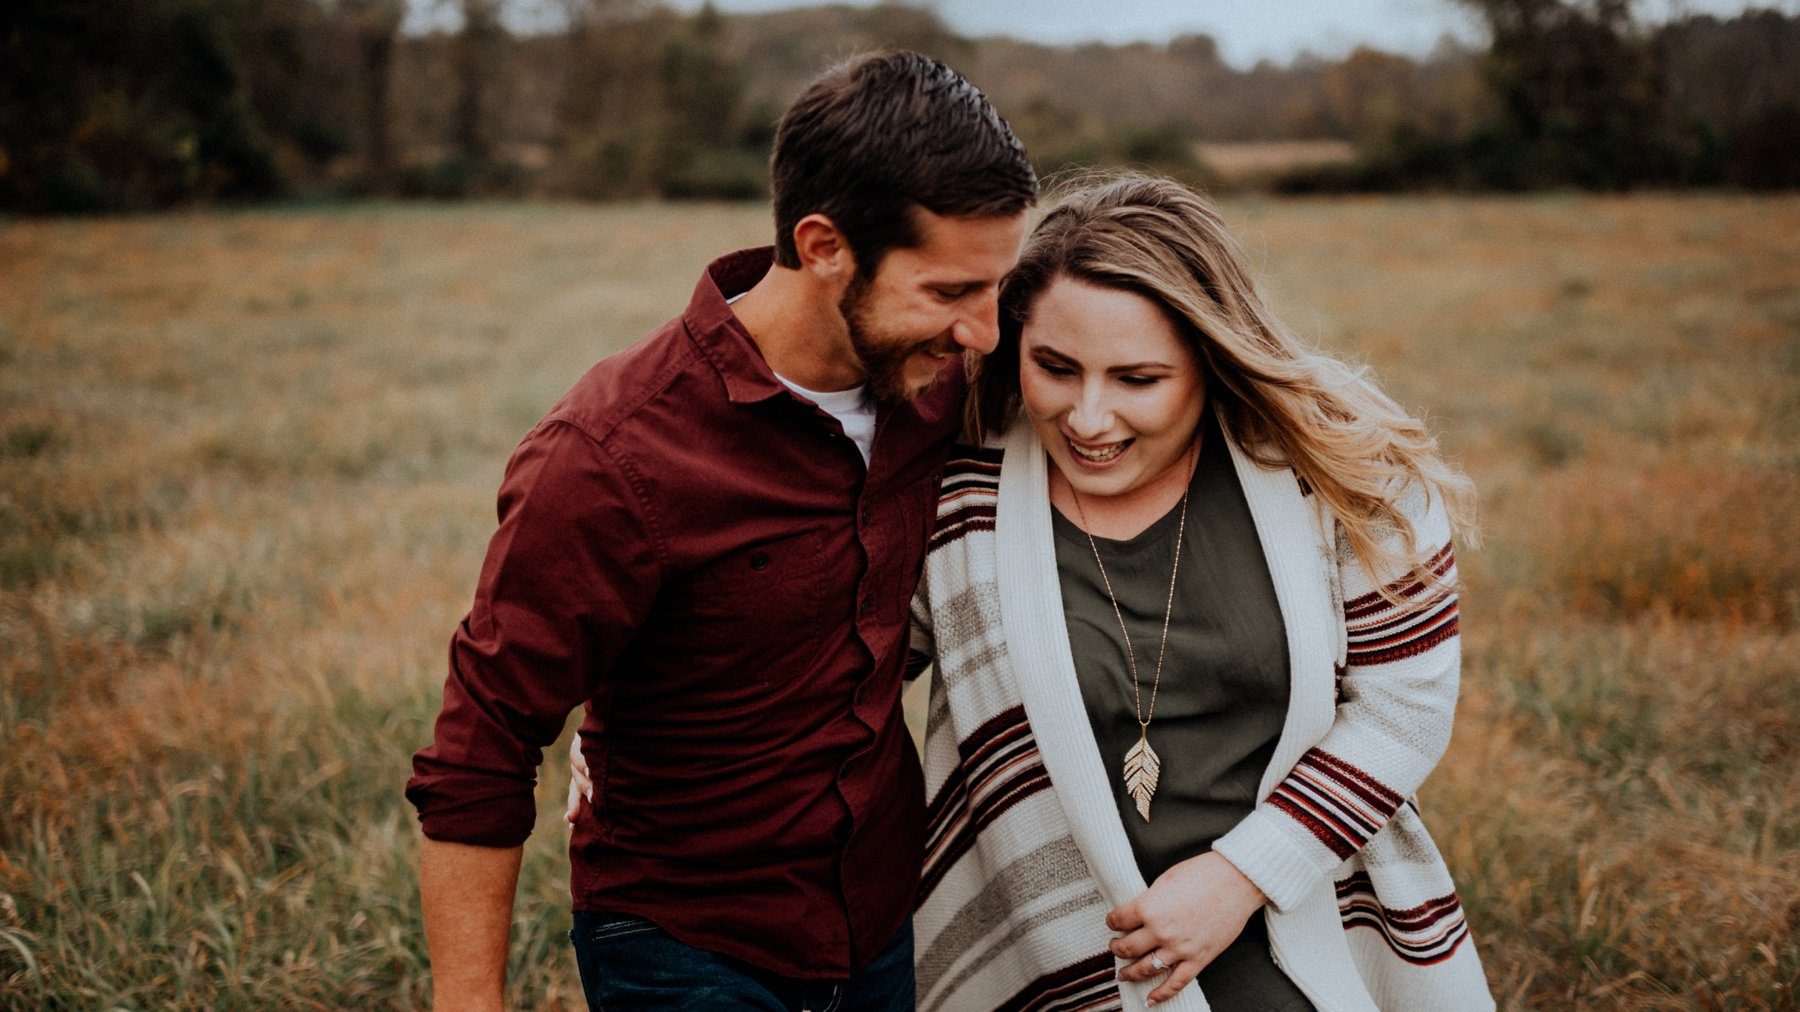 244-242-white-clay-creek-engagement-session-4.jpg